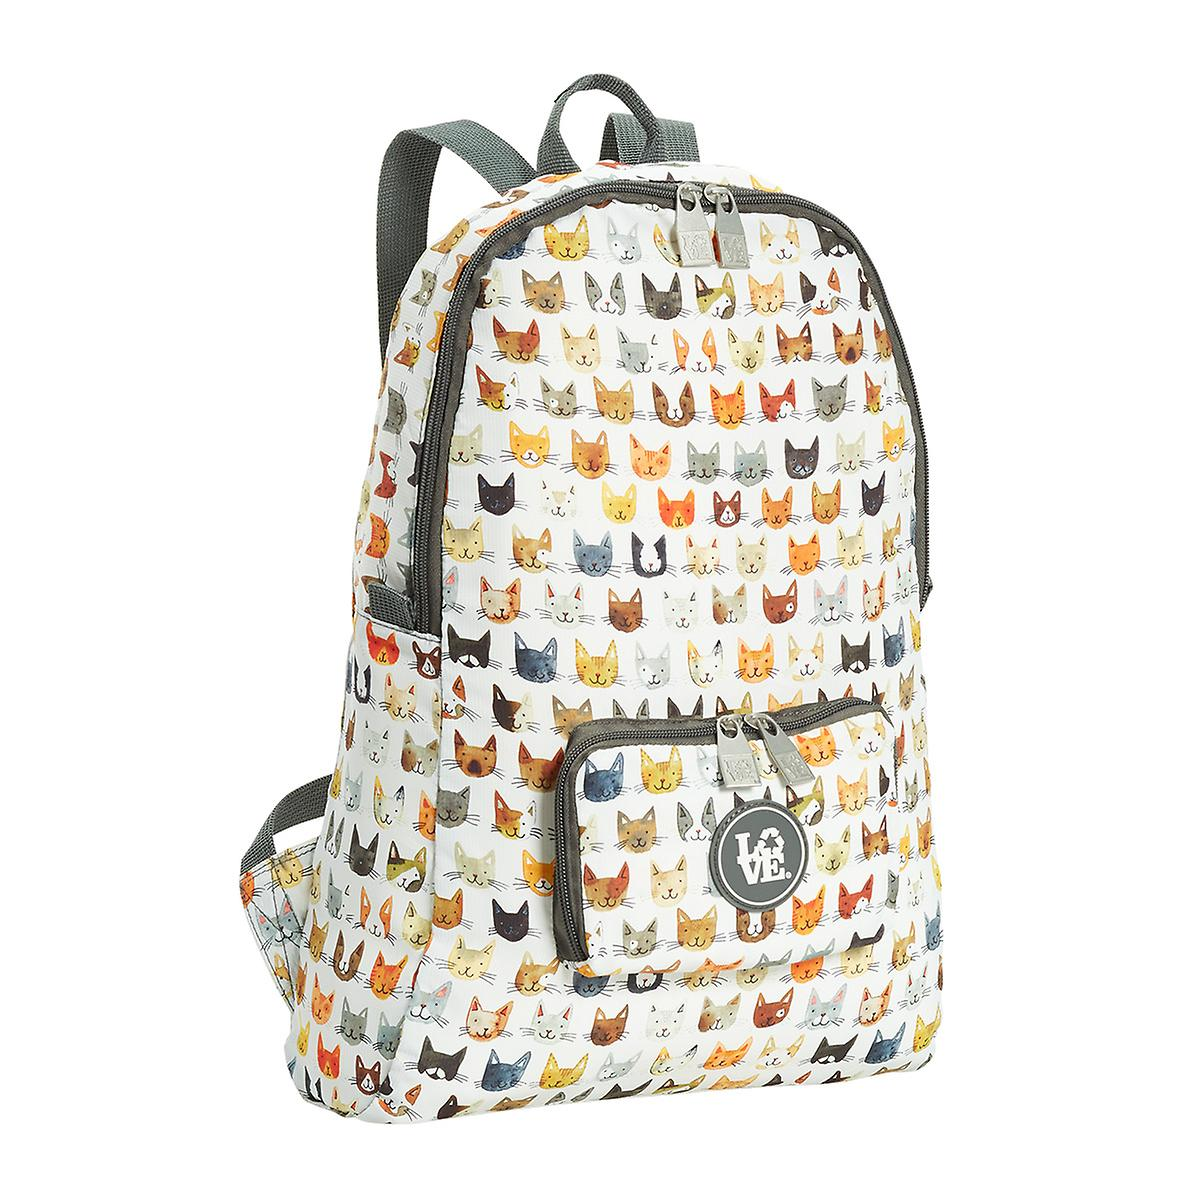 STASH BACKPACK - SLICK KITTY